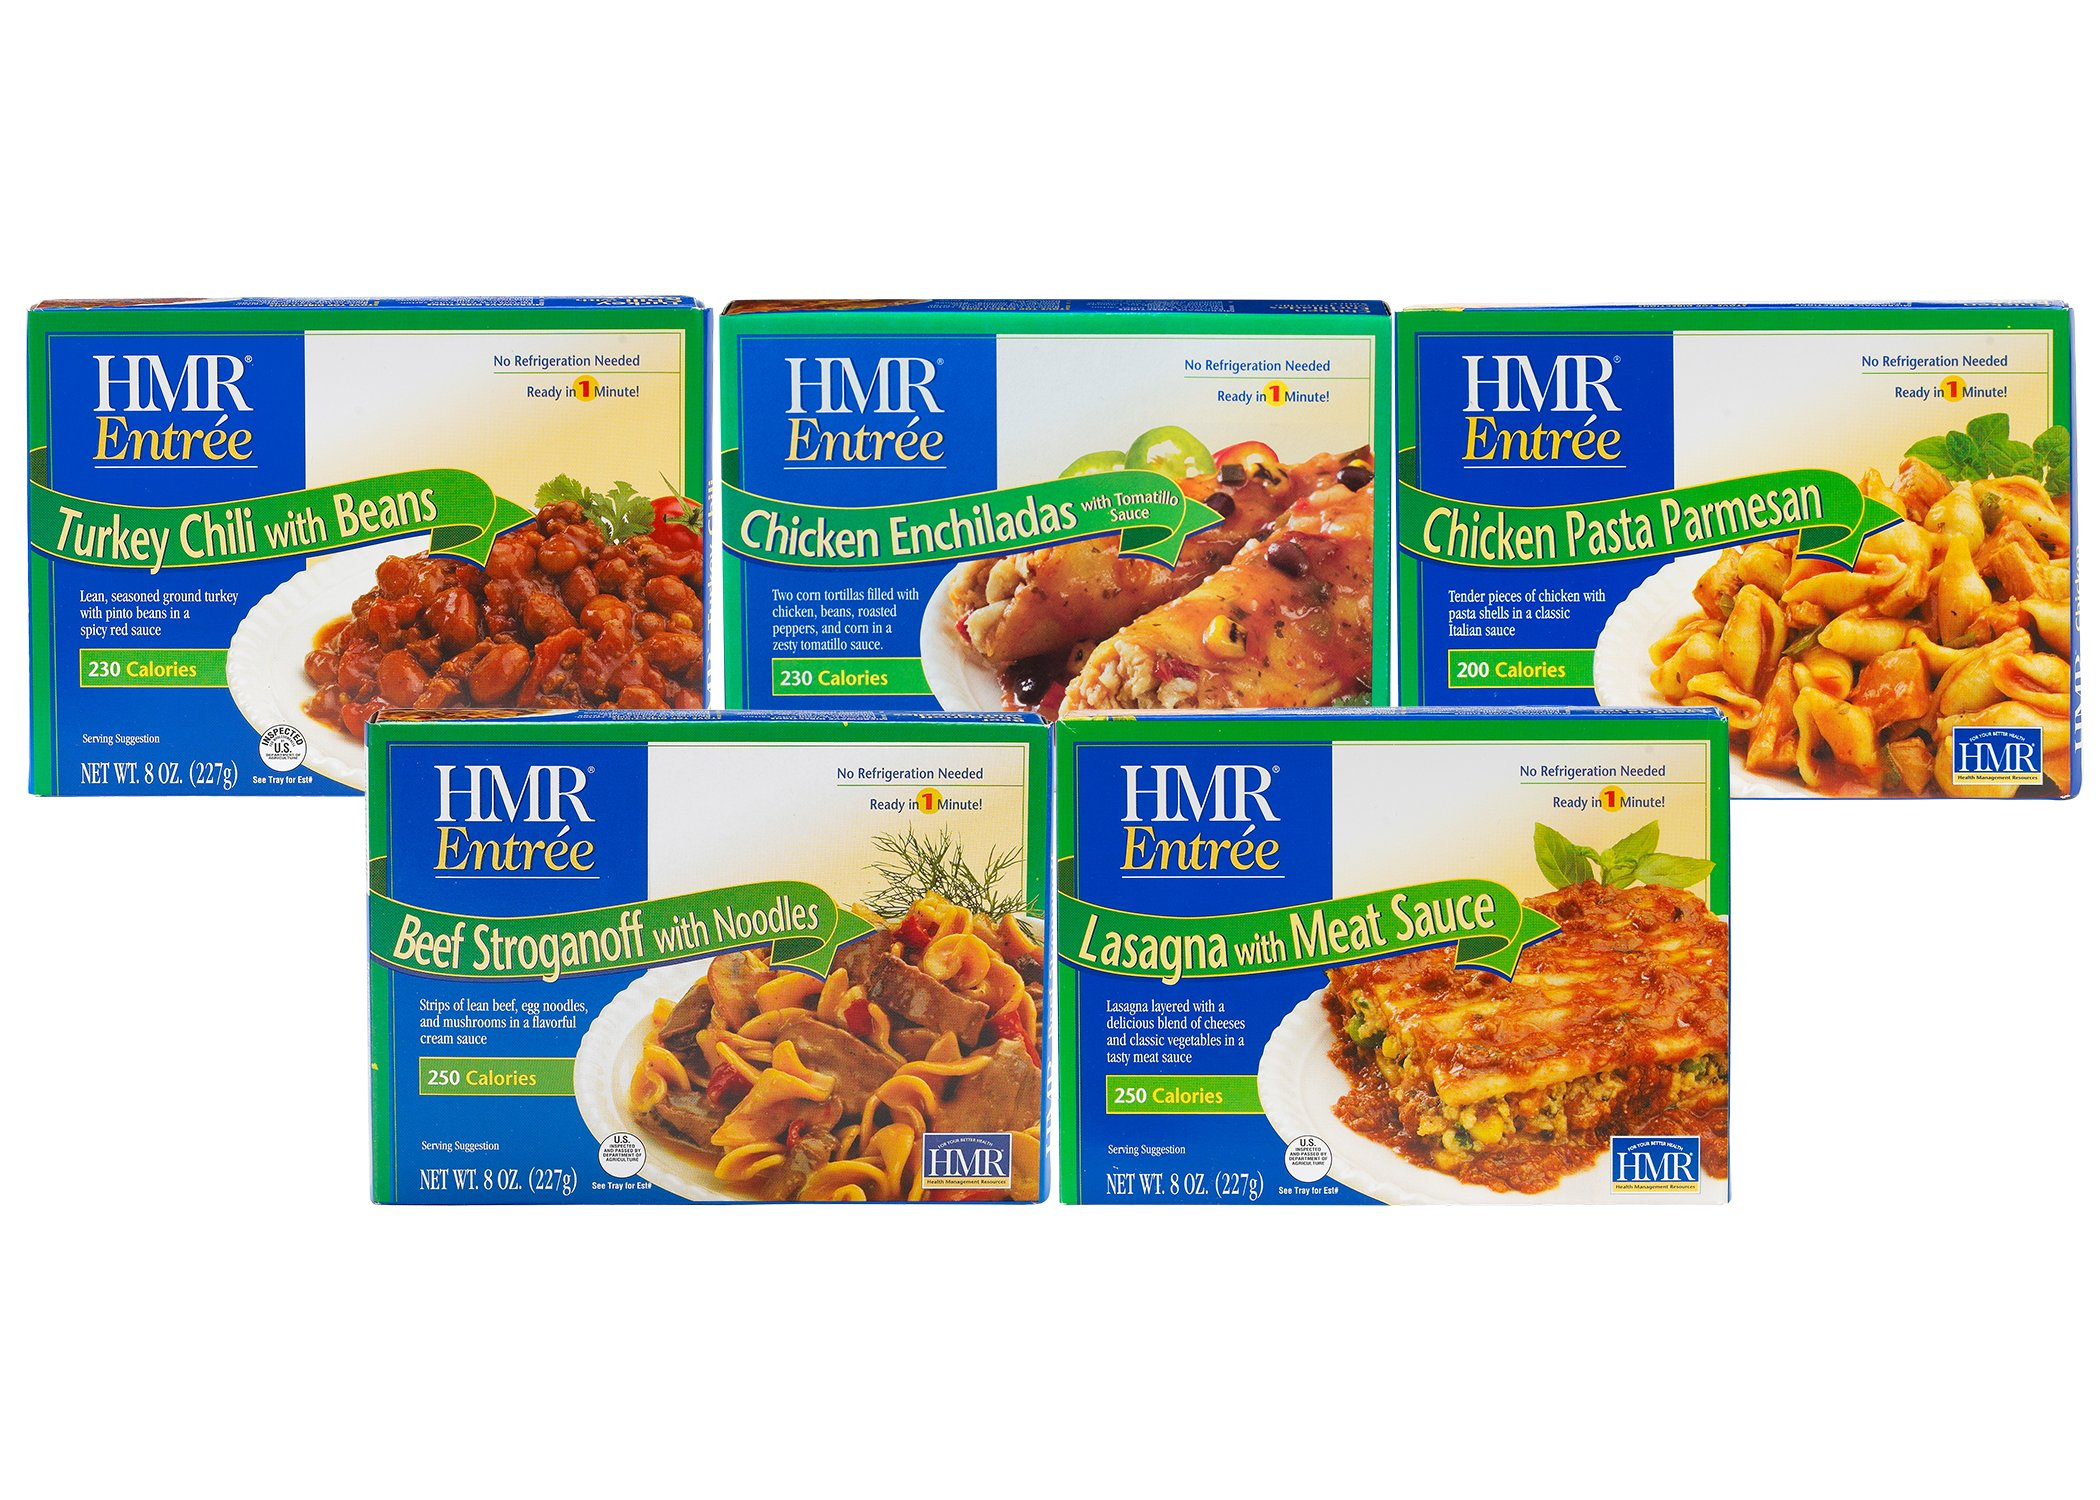 HMR Top 5 Entree Bundle: Chicken Pasta Parmesan, Beef Stroganoff with Noodles, Chicken Enchiladas with Tomatillo Sauce, Lasagna with Meat Sauce, Turkey Chili with Beans, 8 oz. serving (5 Count)